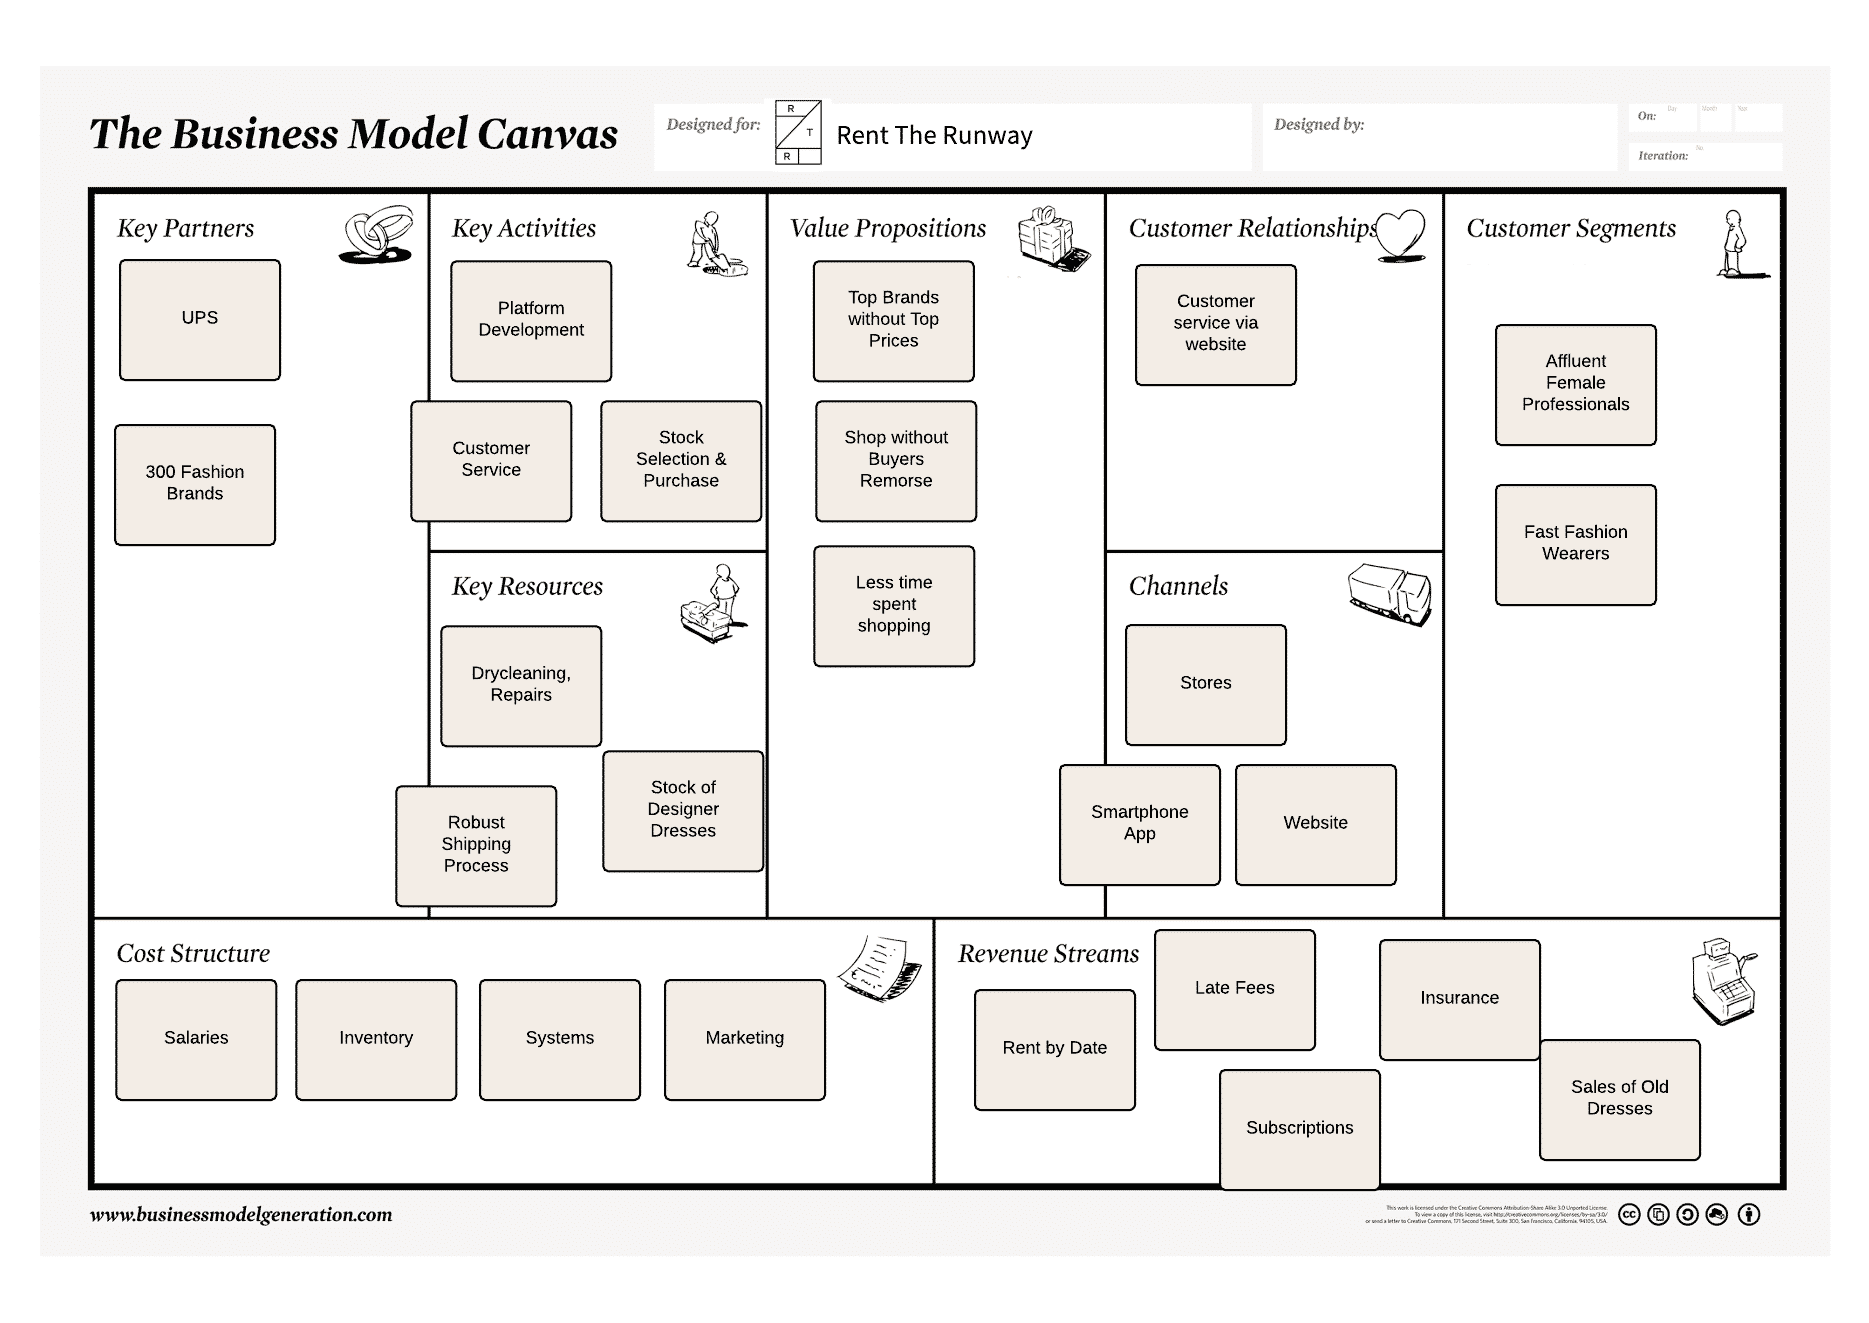 Rent the Runway Business Model Canvas